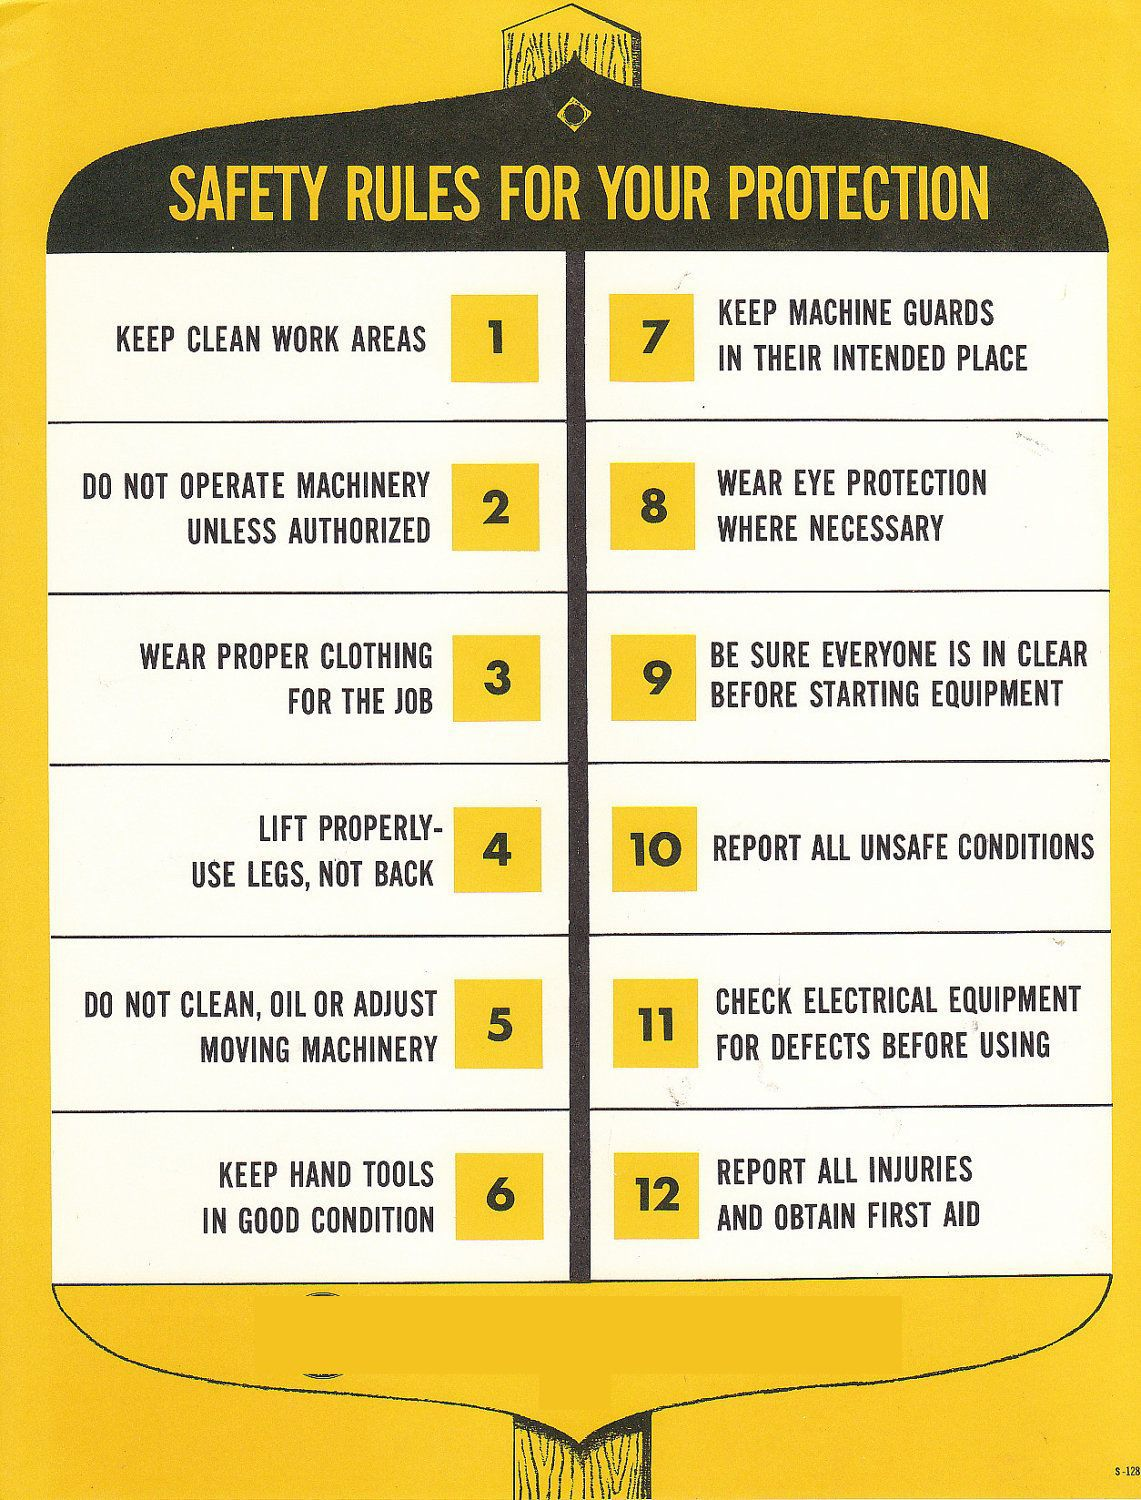 SAFETY RULES FOR YOUR PROTECTION greenwgroup Safety